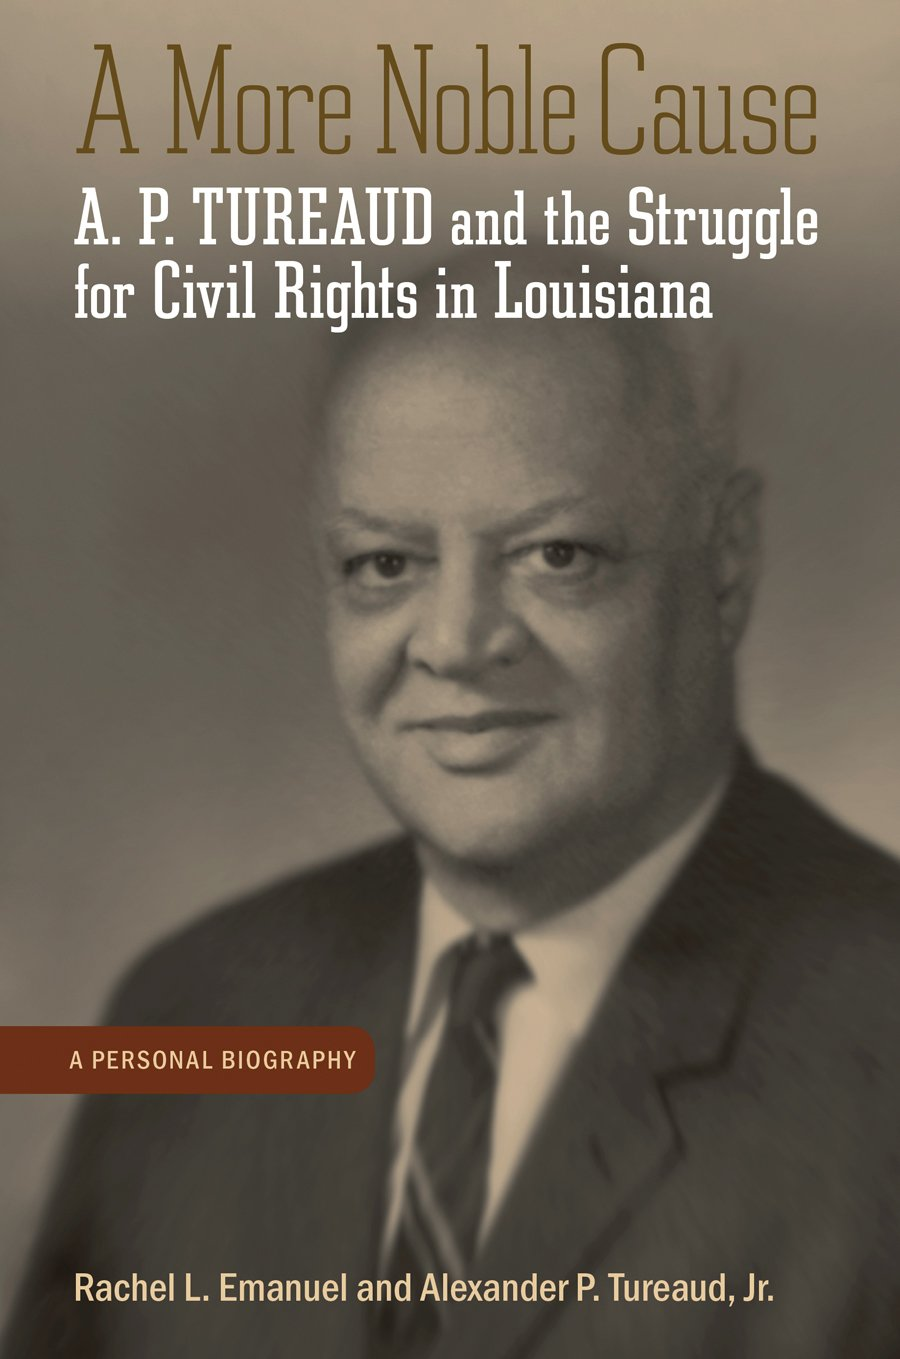 Download A More Noble Cause: A. P. Tureaud and the Struggle for Civil Rights in Louisiana PDF